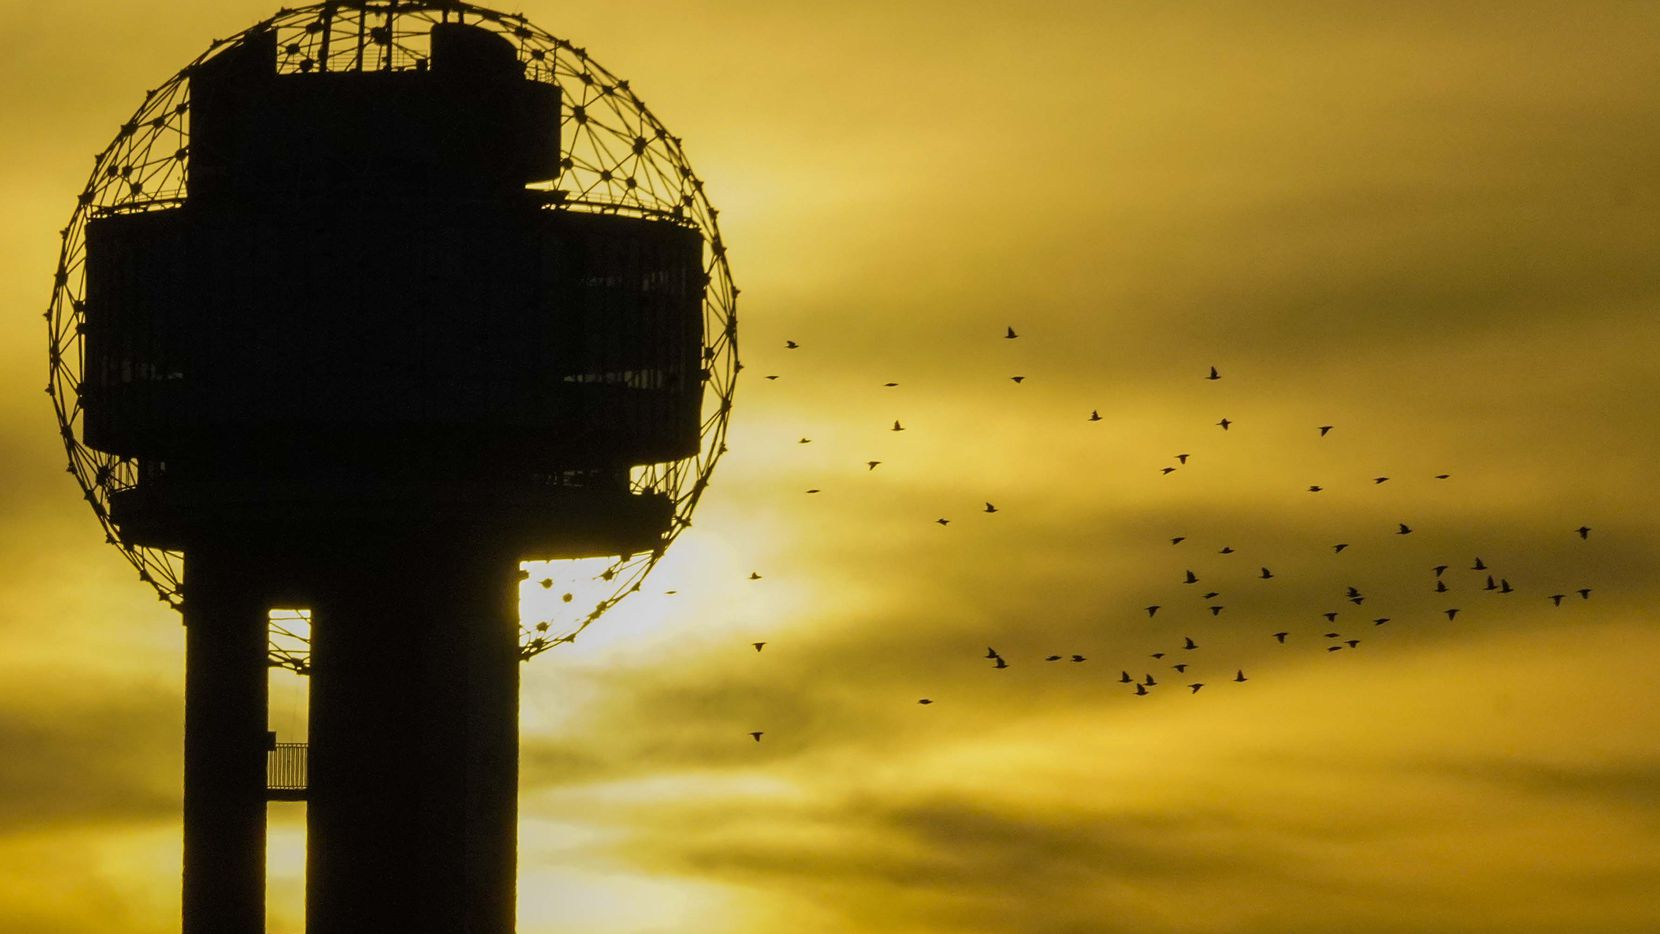 The sun sets as a flock of birds flies past Reunion Tower on  June 30 in Dallas. As temperatures reach into the 90s, more people may be tempted to socialize indoors, and that could increase the spread of the coronavirus, one researcher says.